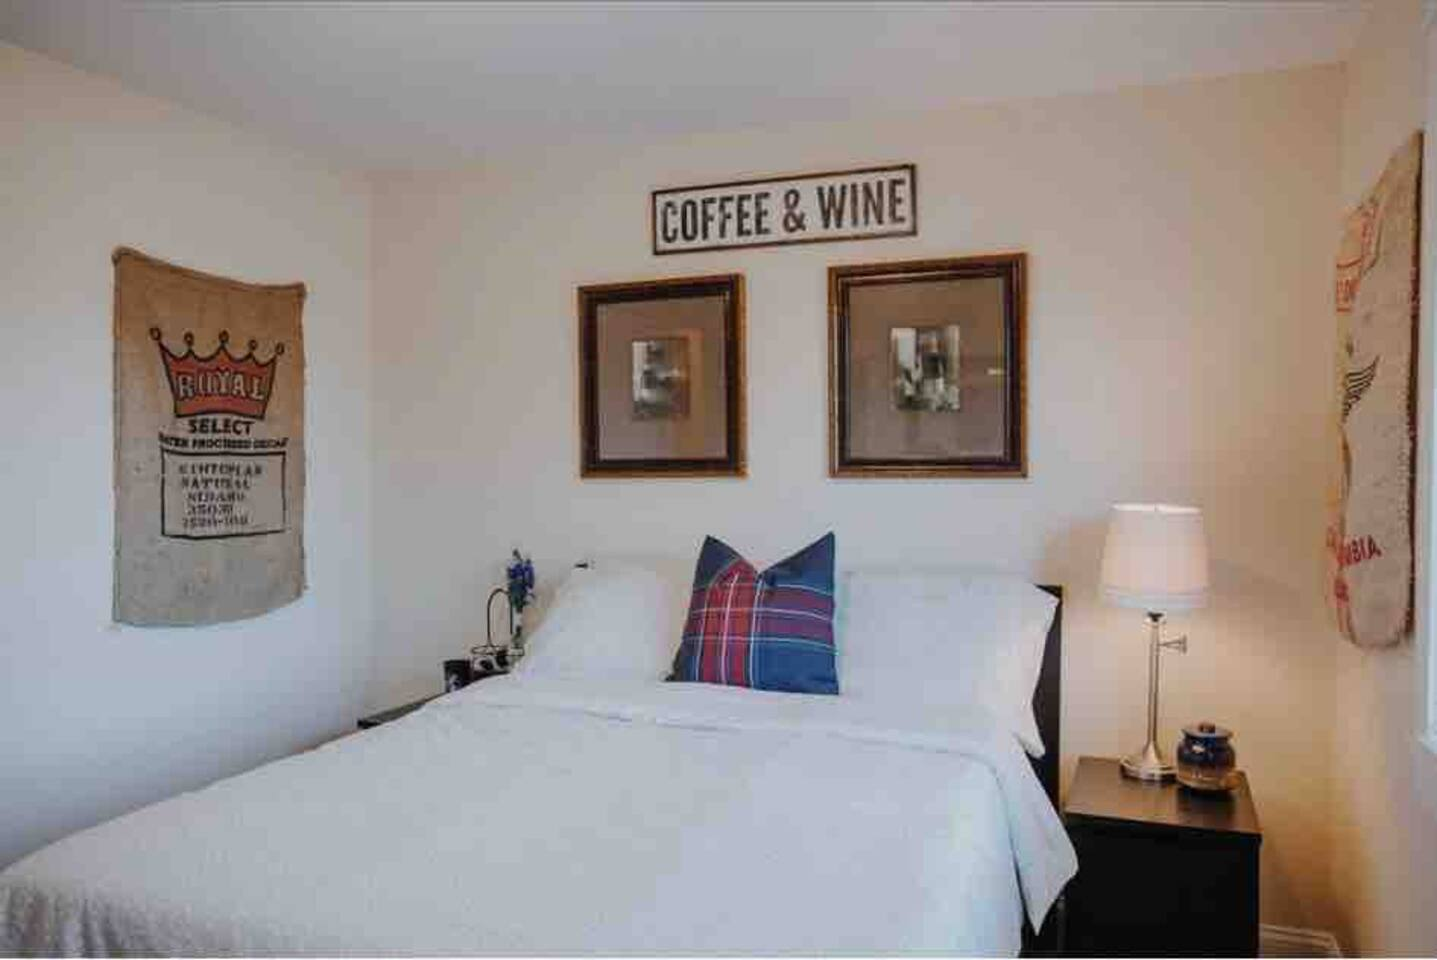 Relaxing bedroom, charmingly decorated with ambience. Enjoy the full size bed, comfortable armchair. Kick your feet up. Walking distance to downtown Dundee with amenities, access to 2 full shared bathrooms, kitchen, large backyard, dining living rm.